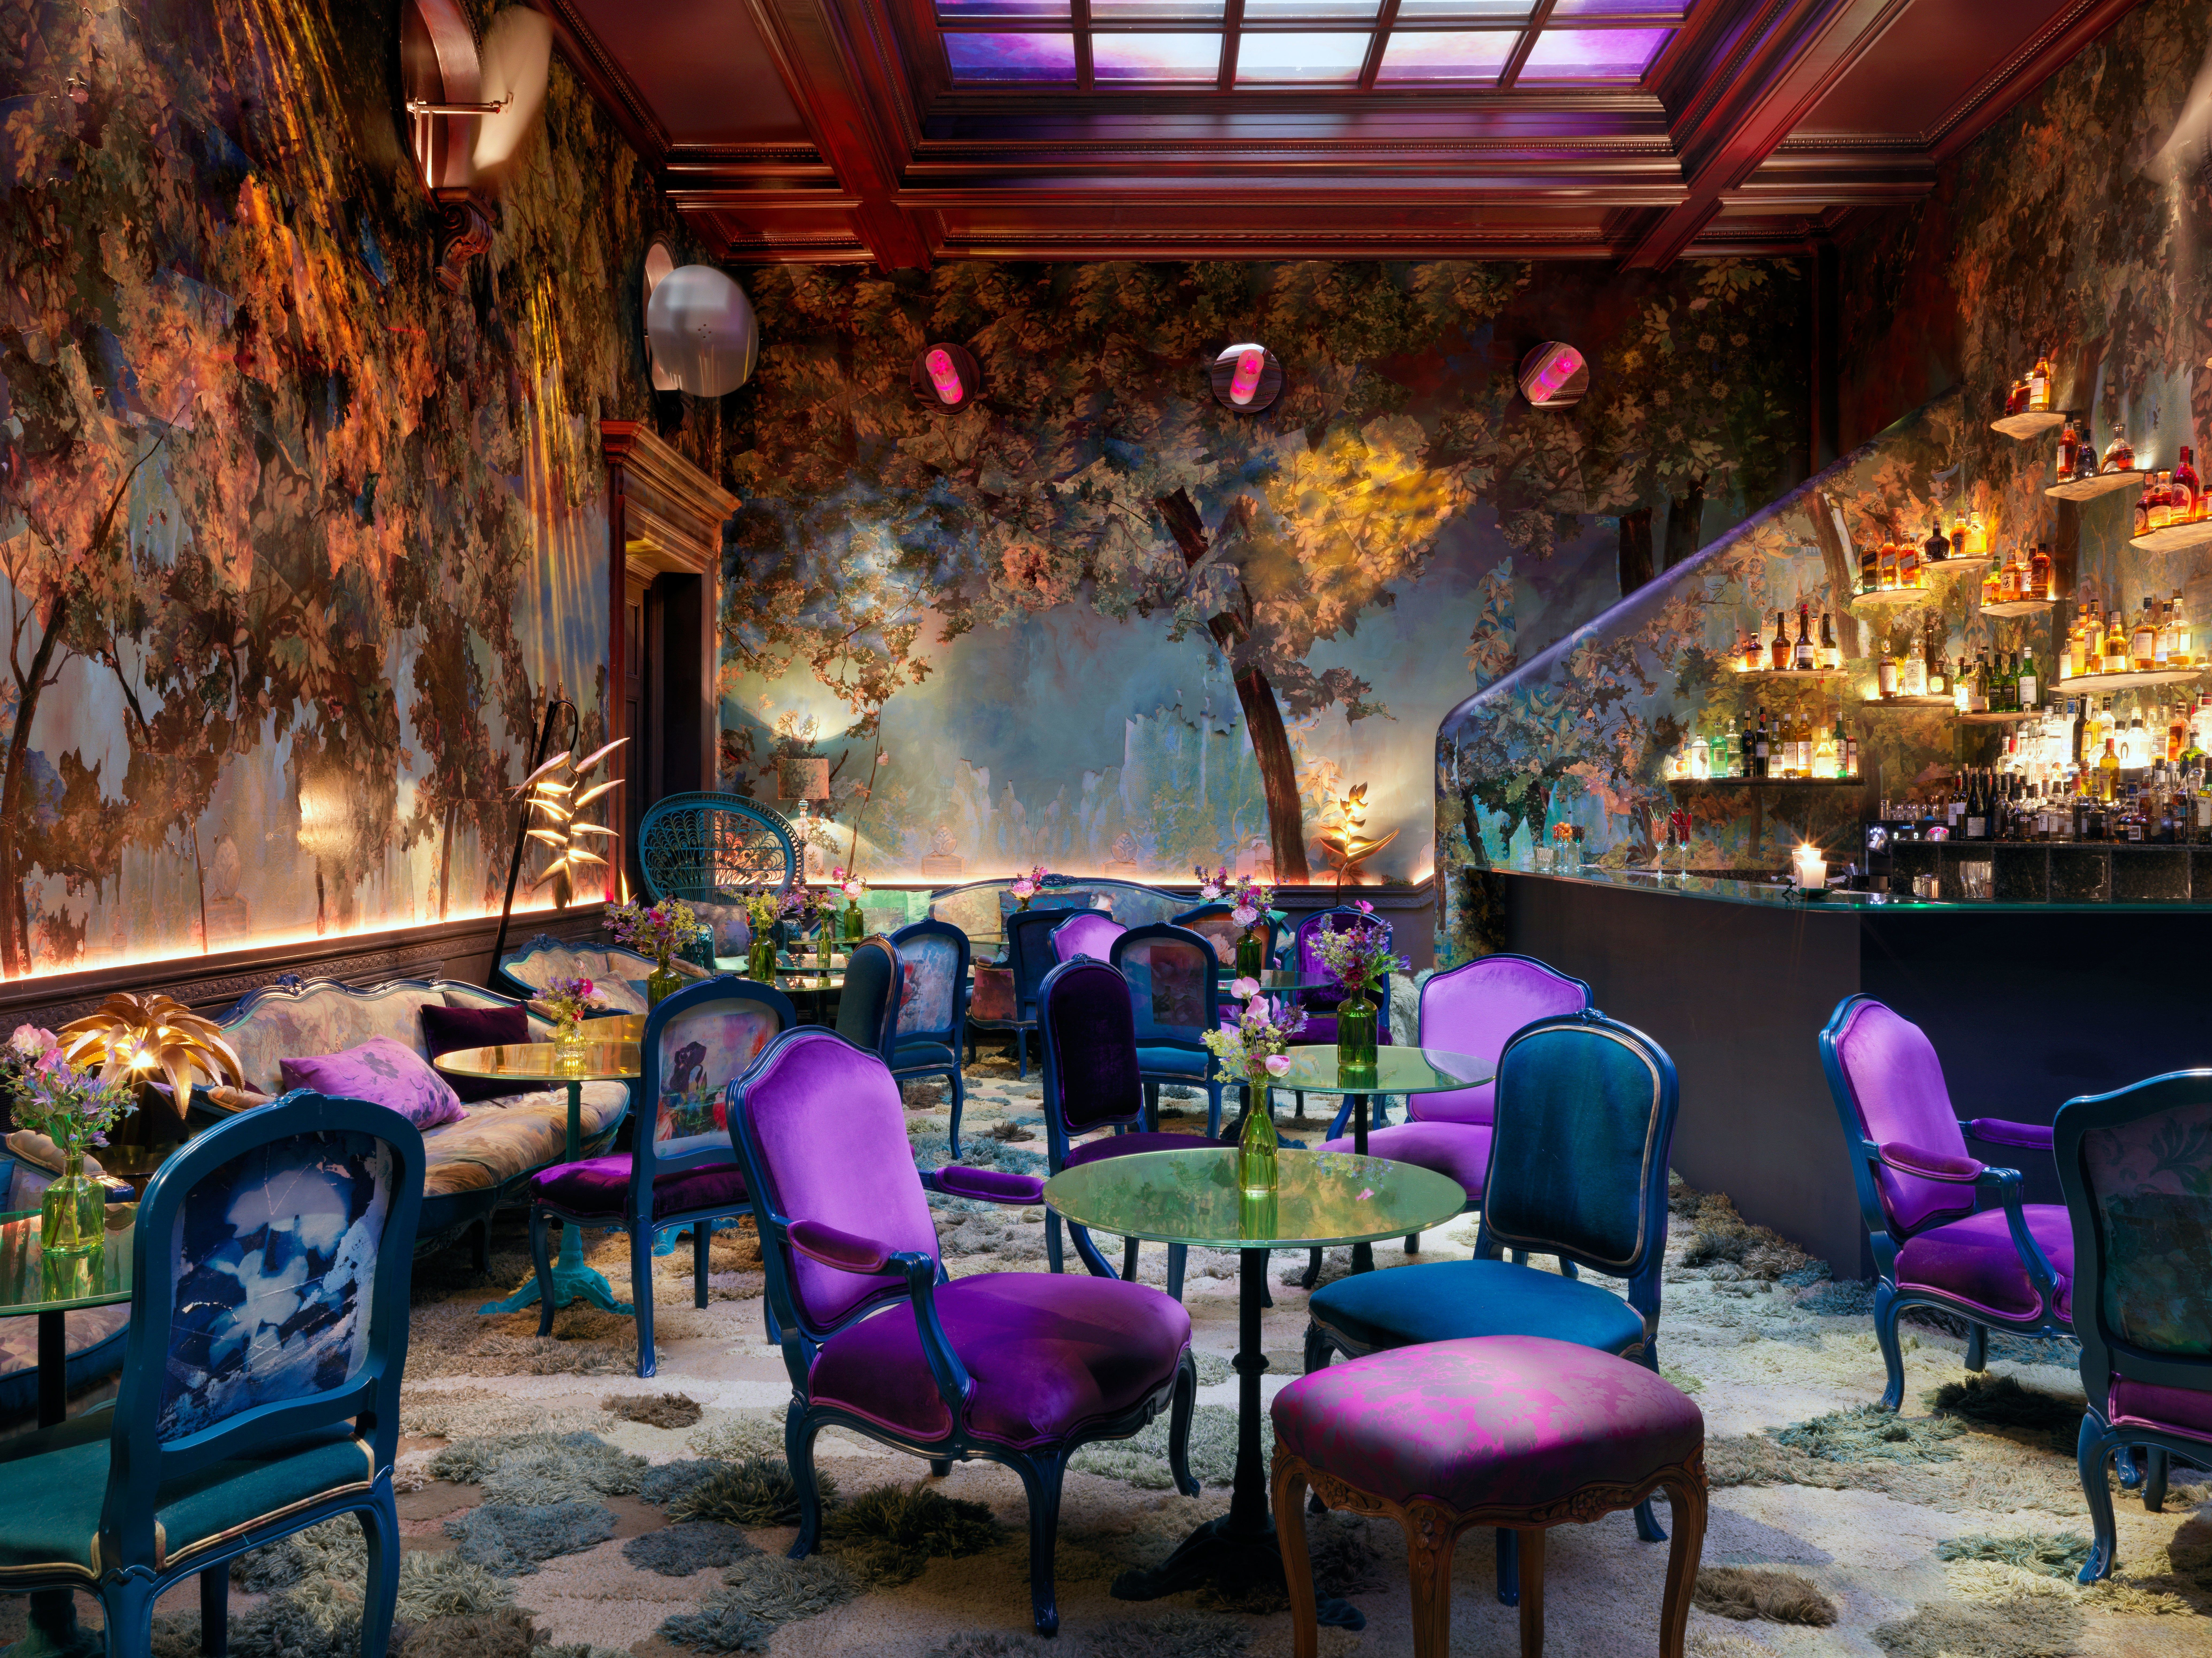 Step Inside London's Most Otherworldly New Venue is part of Restaurant design - Tucked inside Mayfair hot spot Sketch, the venue whisks visitors to a sylvan dreamscape